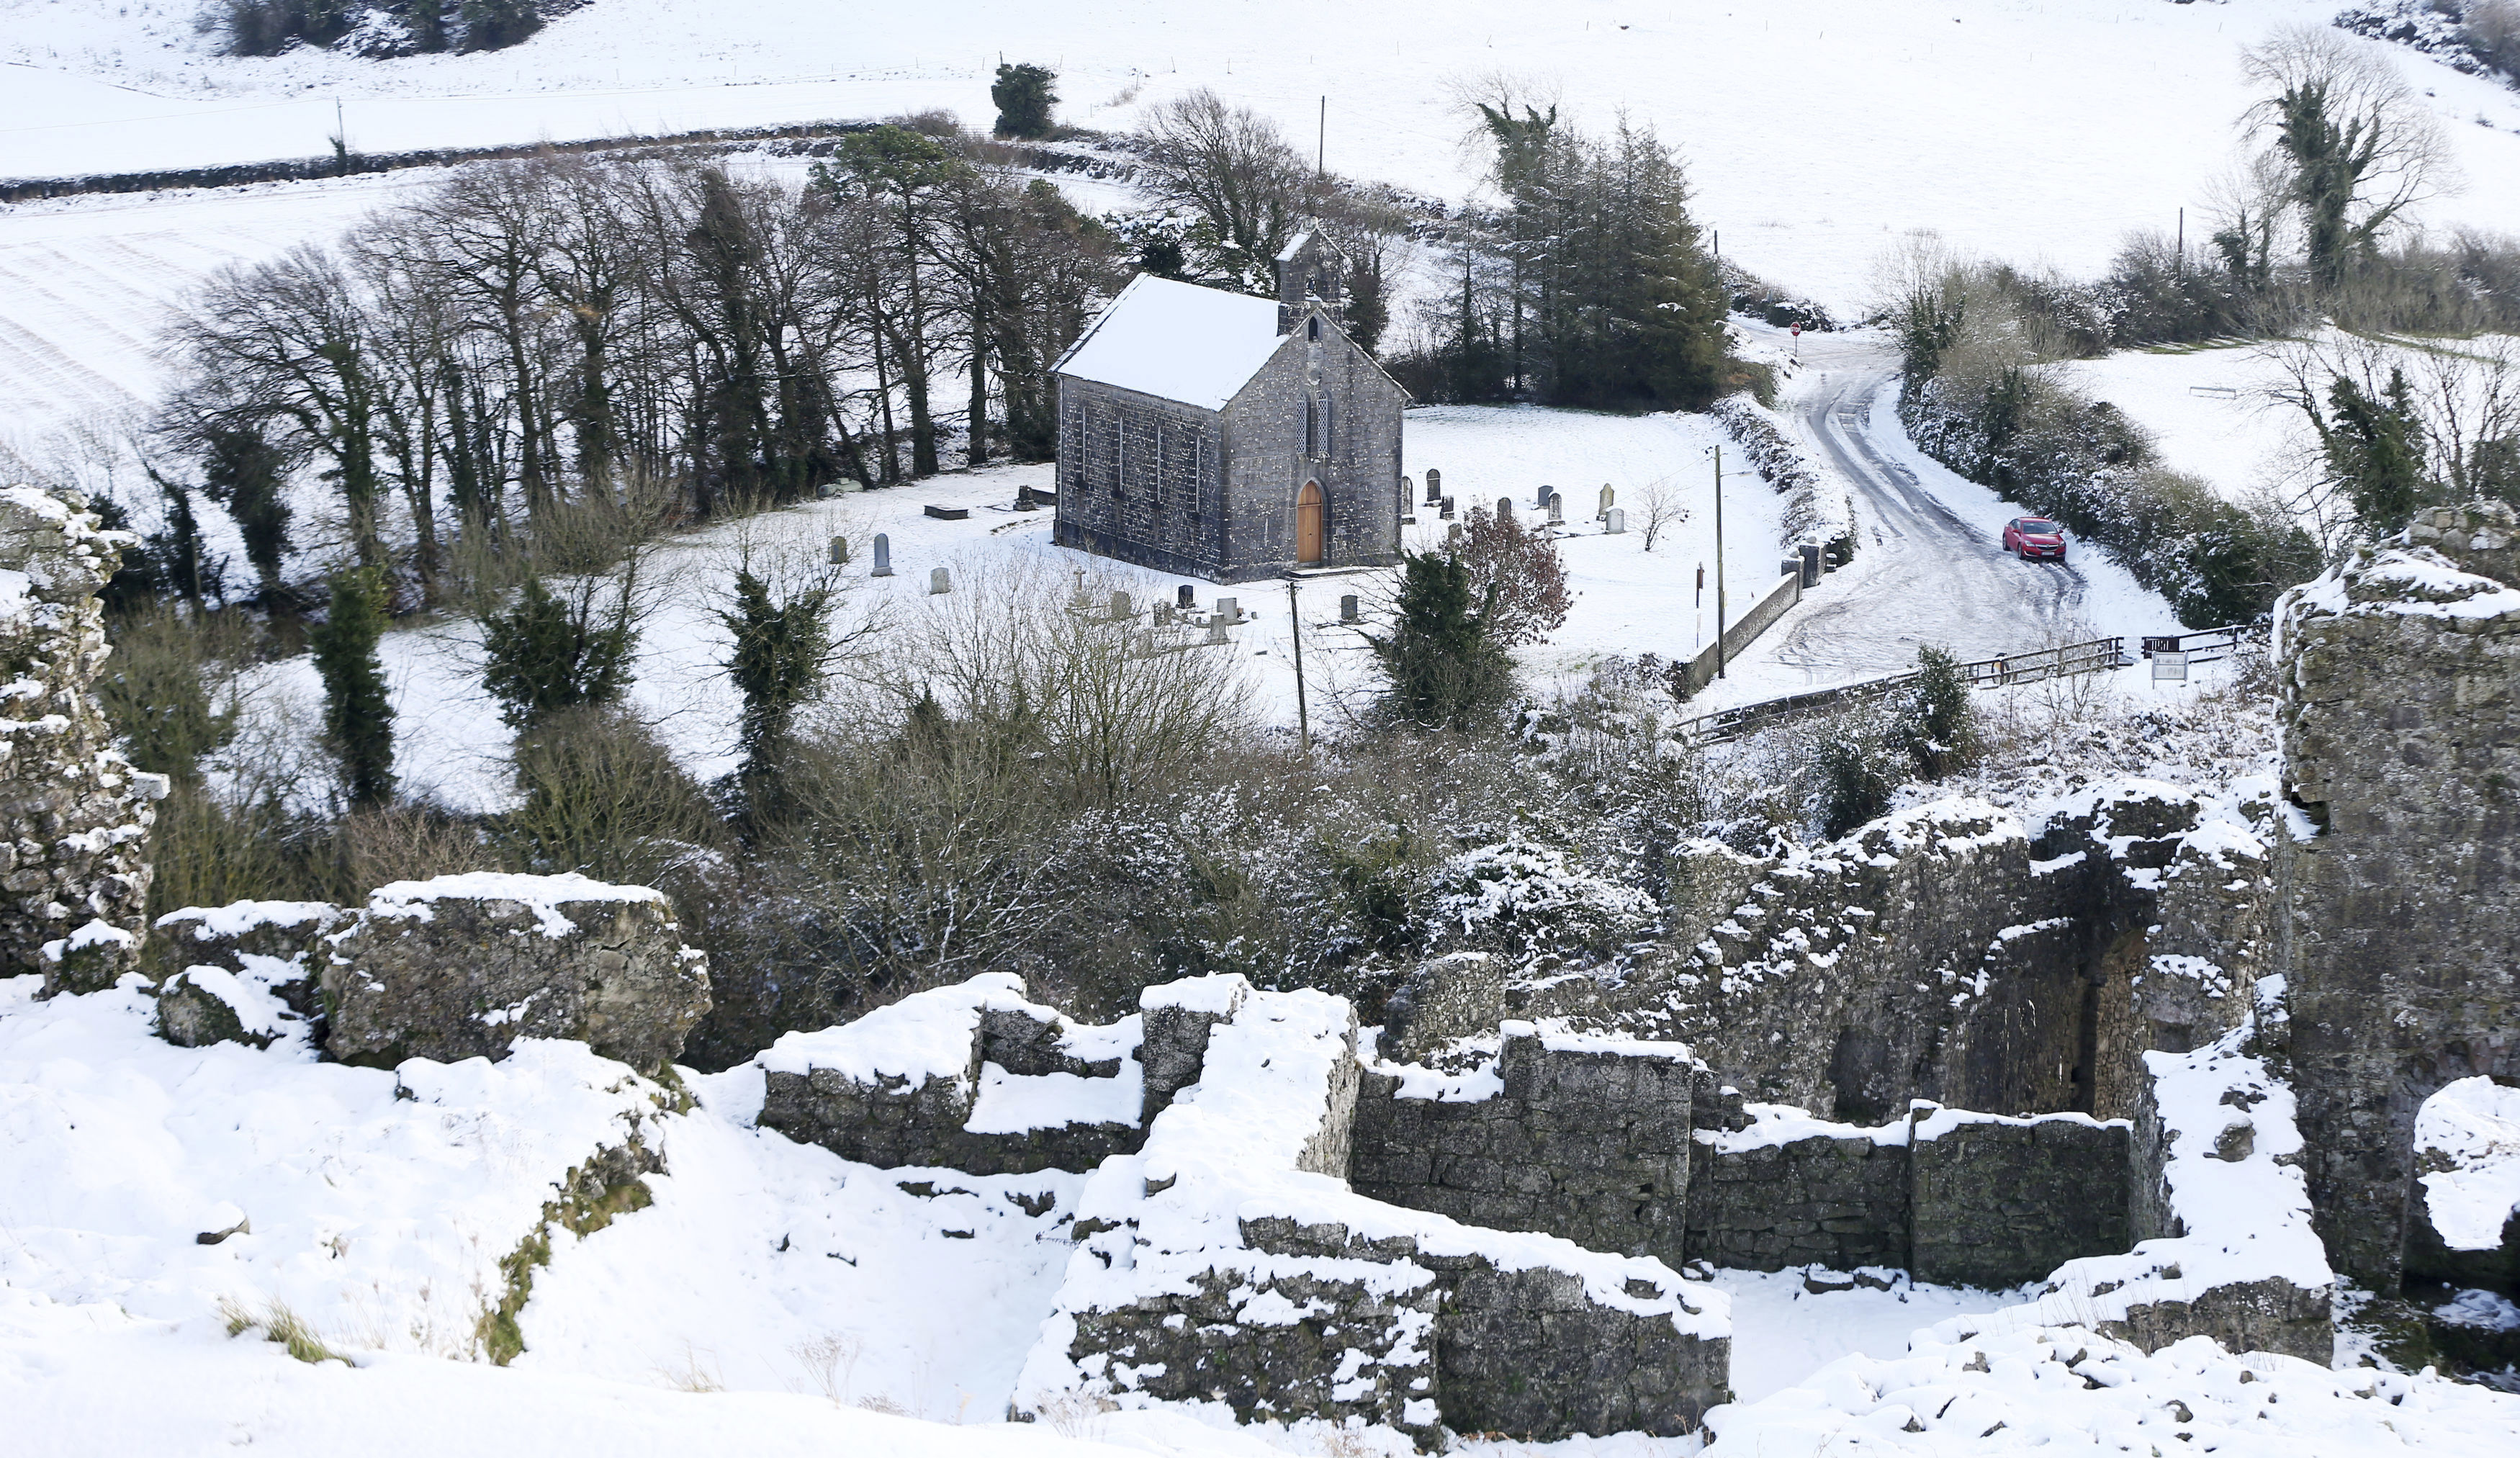 Gallery a weekend of snow from the us to europe snow covered hills around the holy trinity anglican church in aghnahily co laois ireland monday dec 11 2017 niall carsonpa via ap madrichimfo Images